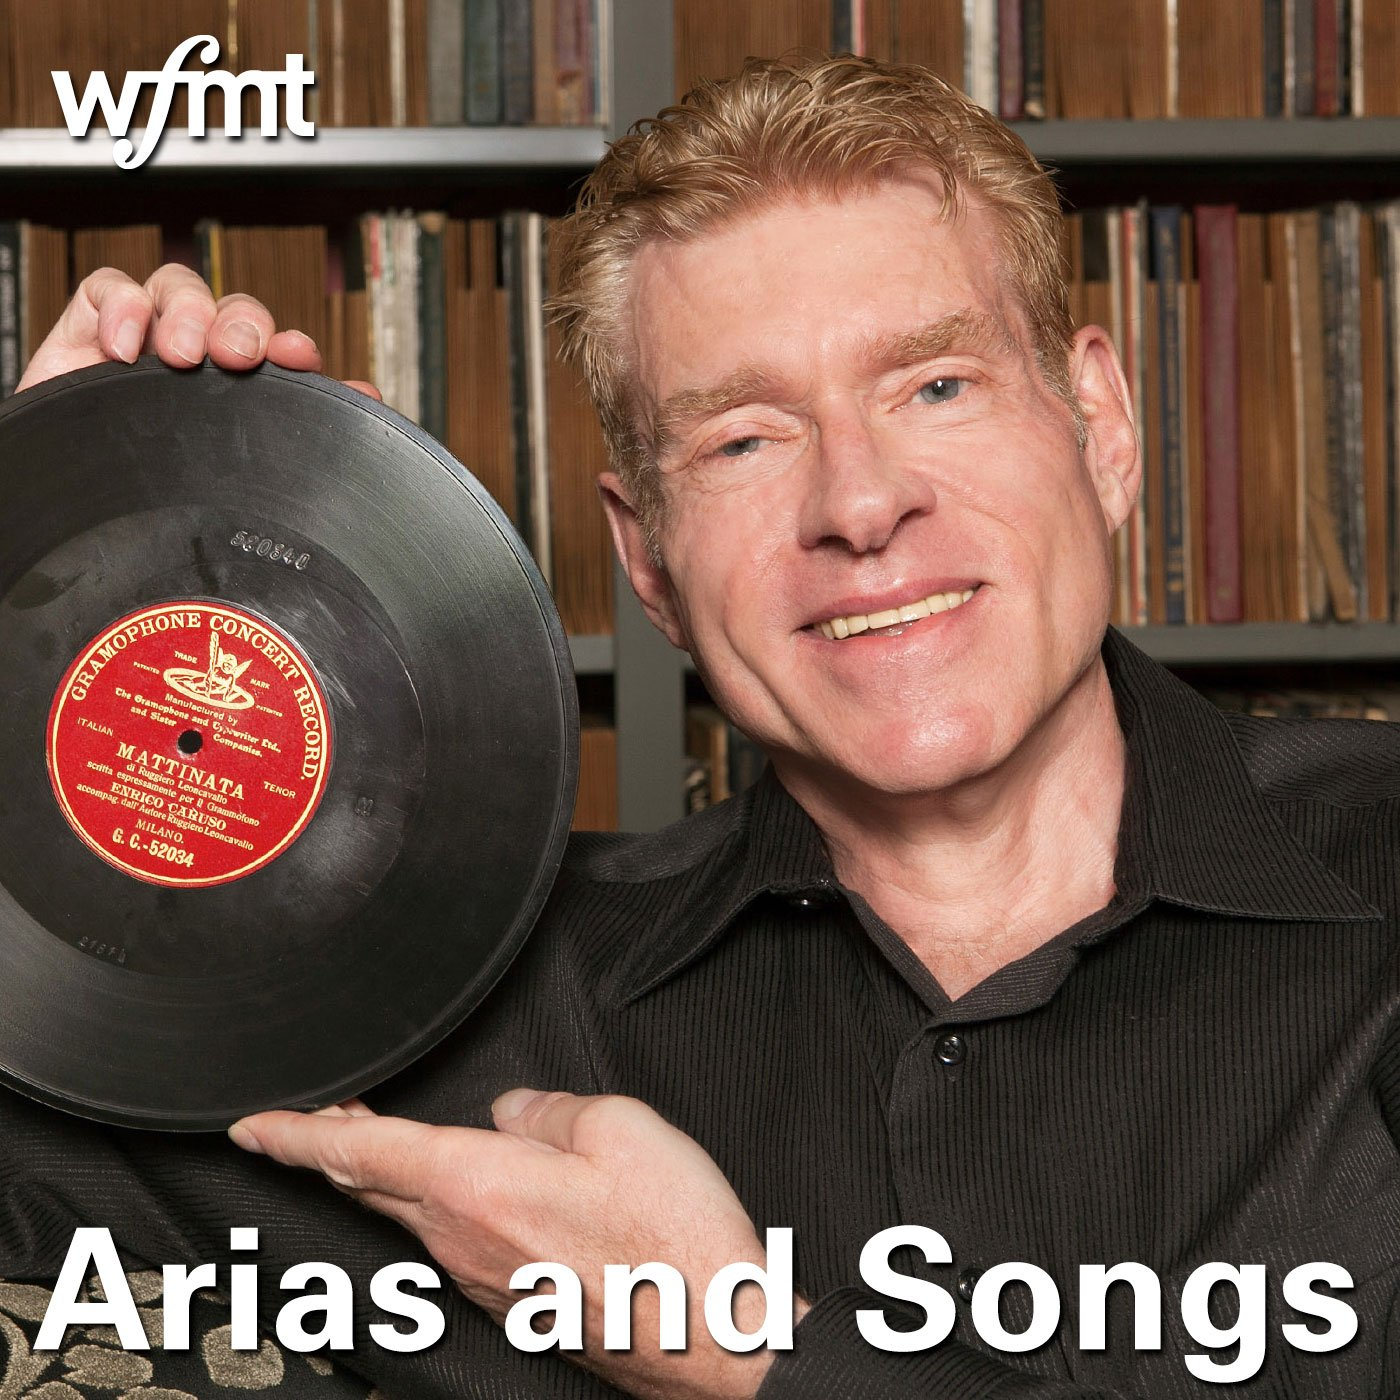 Arias and Songs podcast